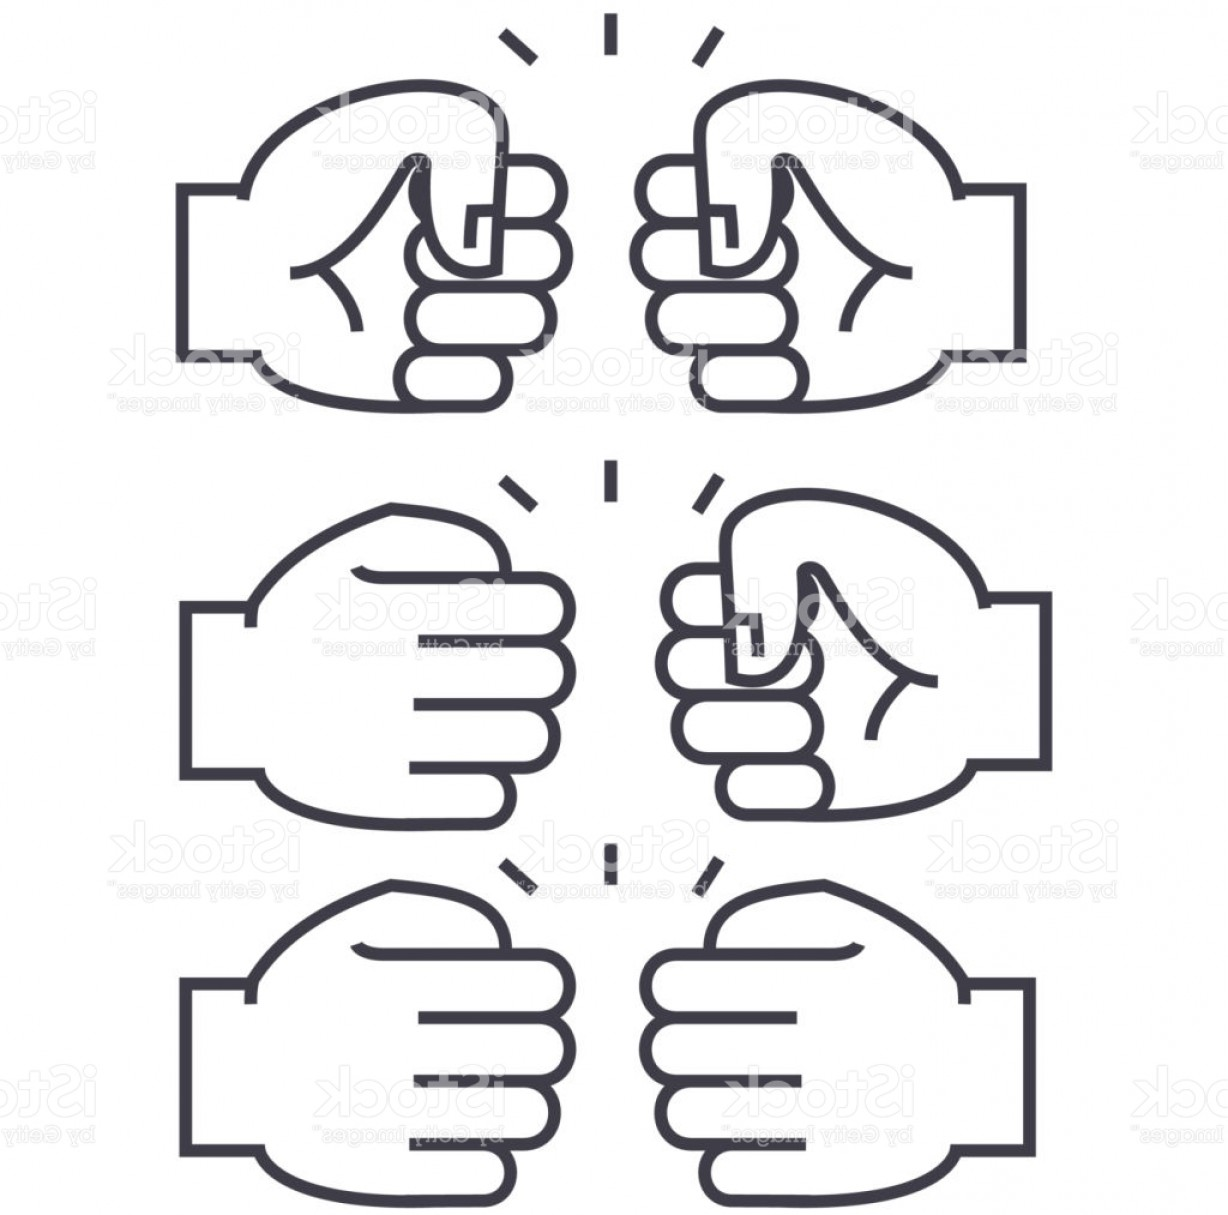 Emoji Fist Bump Vector Graphic: Fist Bump Vector Line Icon Sign Illustration On Background Editable Strokes Gm